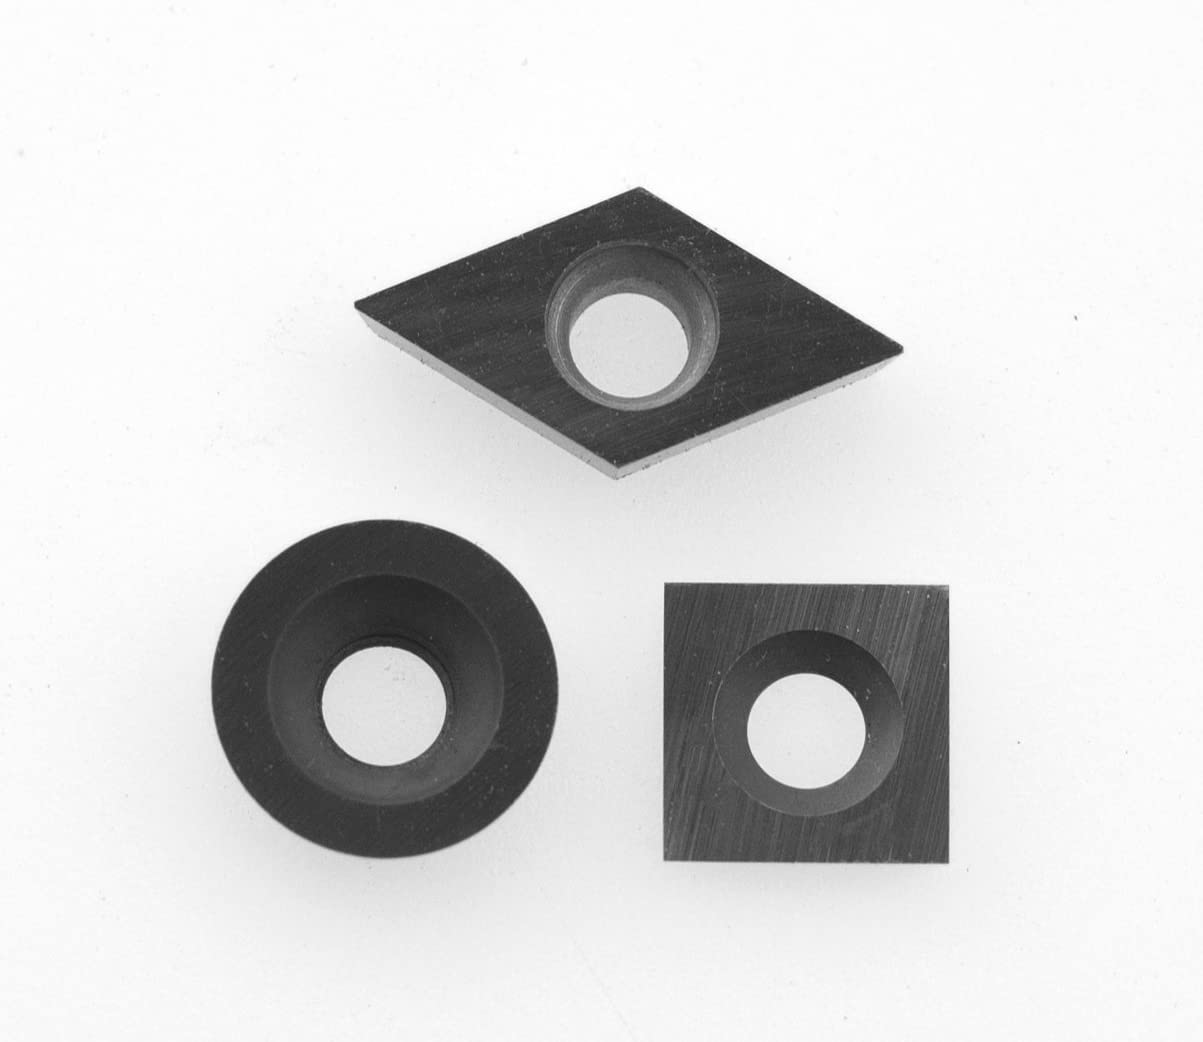 Combo Pack 3 Different Sizes 3 Carbide Insert Cutters for Wood Turning